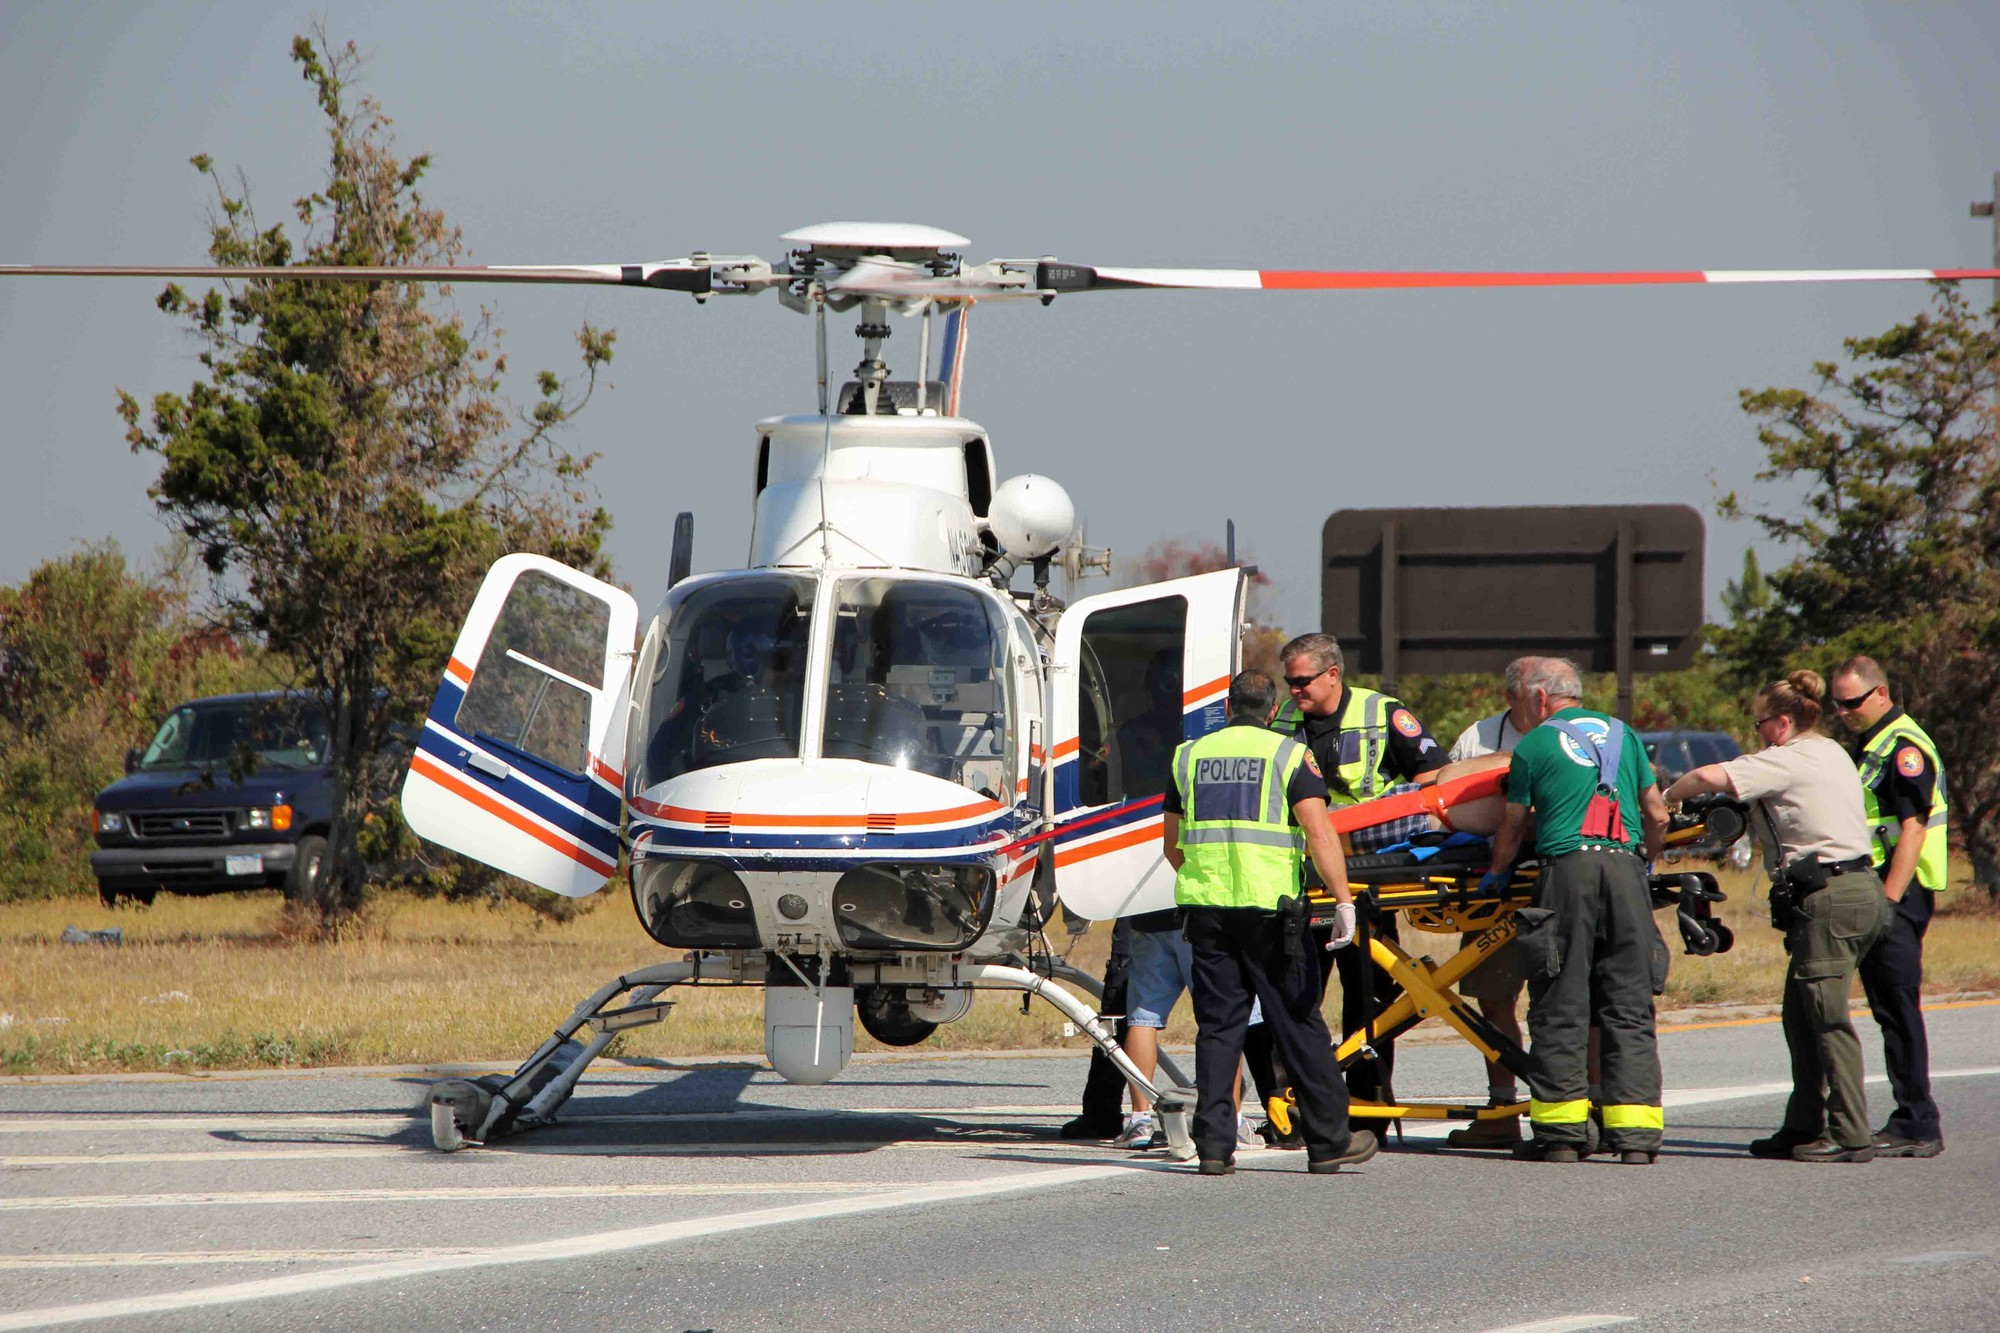 The Loop Parkway was temporarily closed in order to airlift an injured motorist to NUMC.